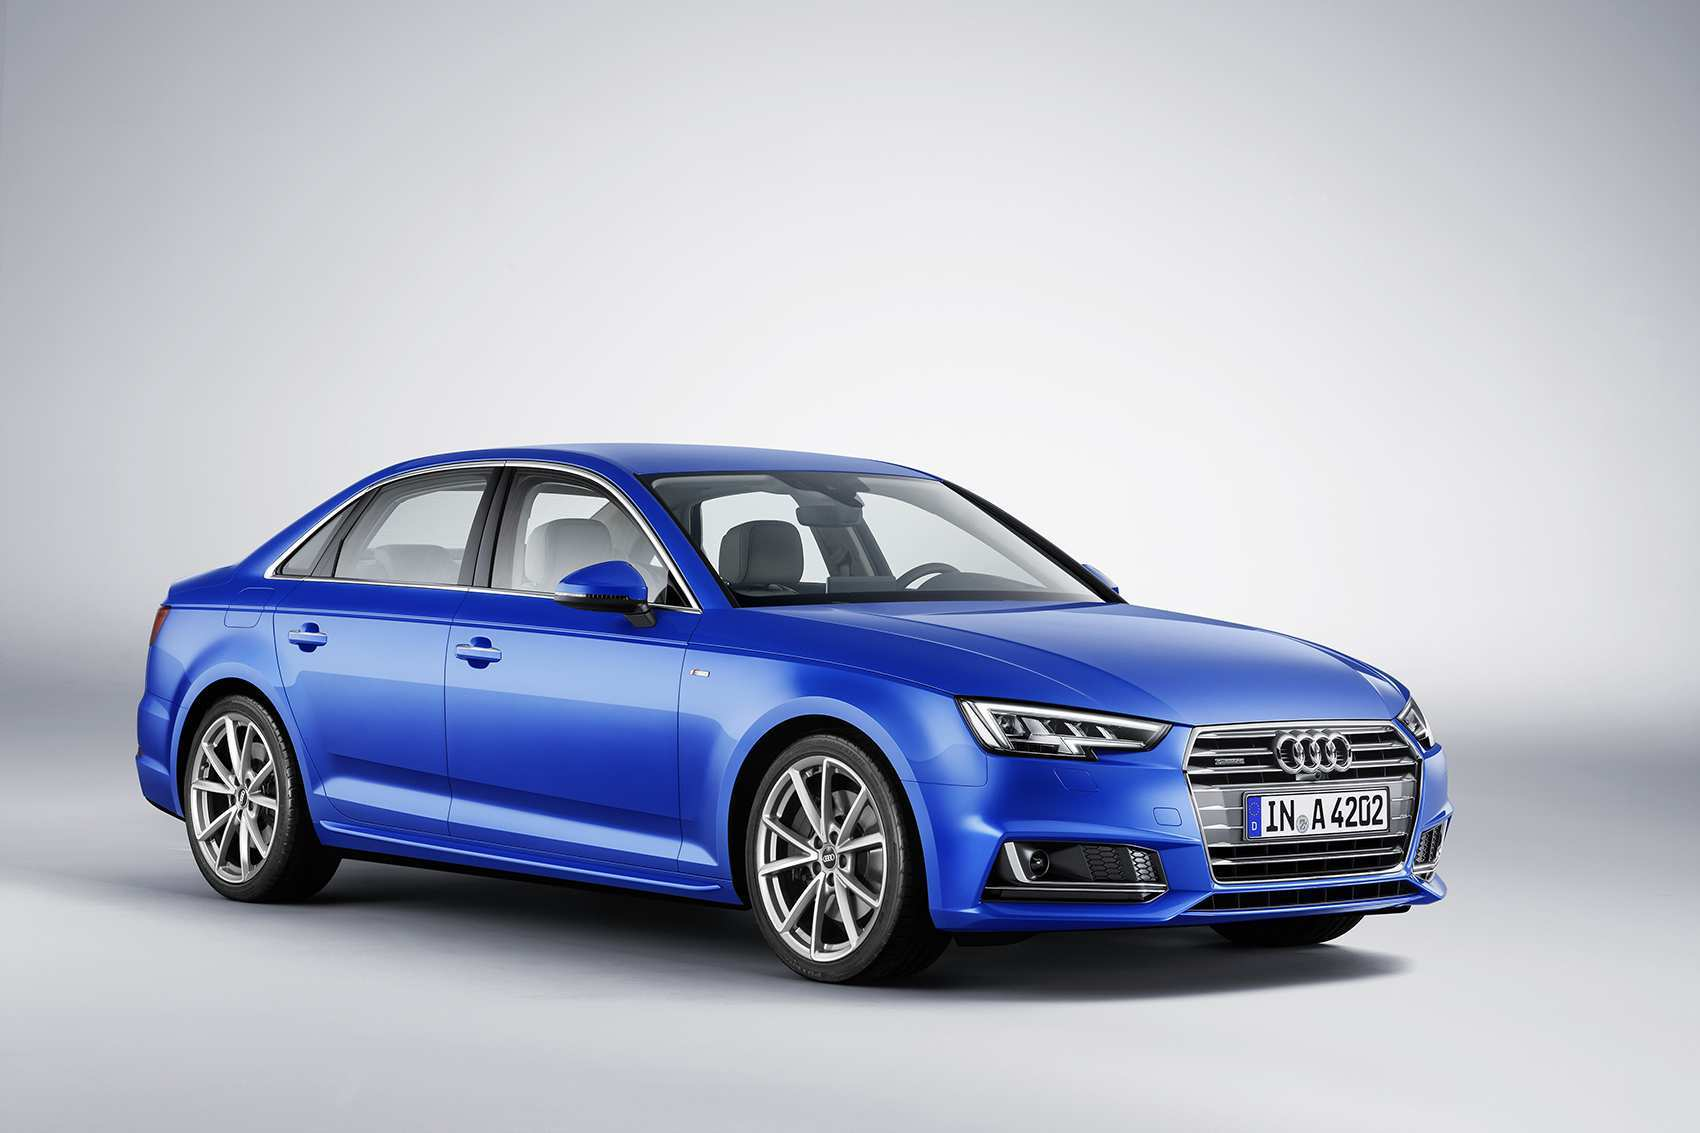 91 The 2020 Audi Order Guide Images by 2020 Audi Order Guide